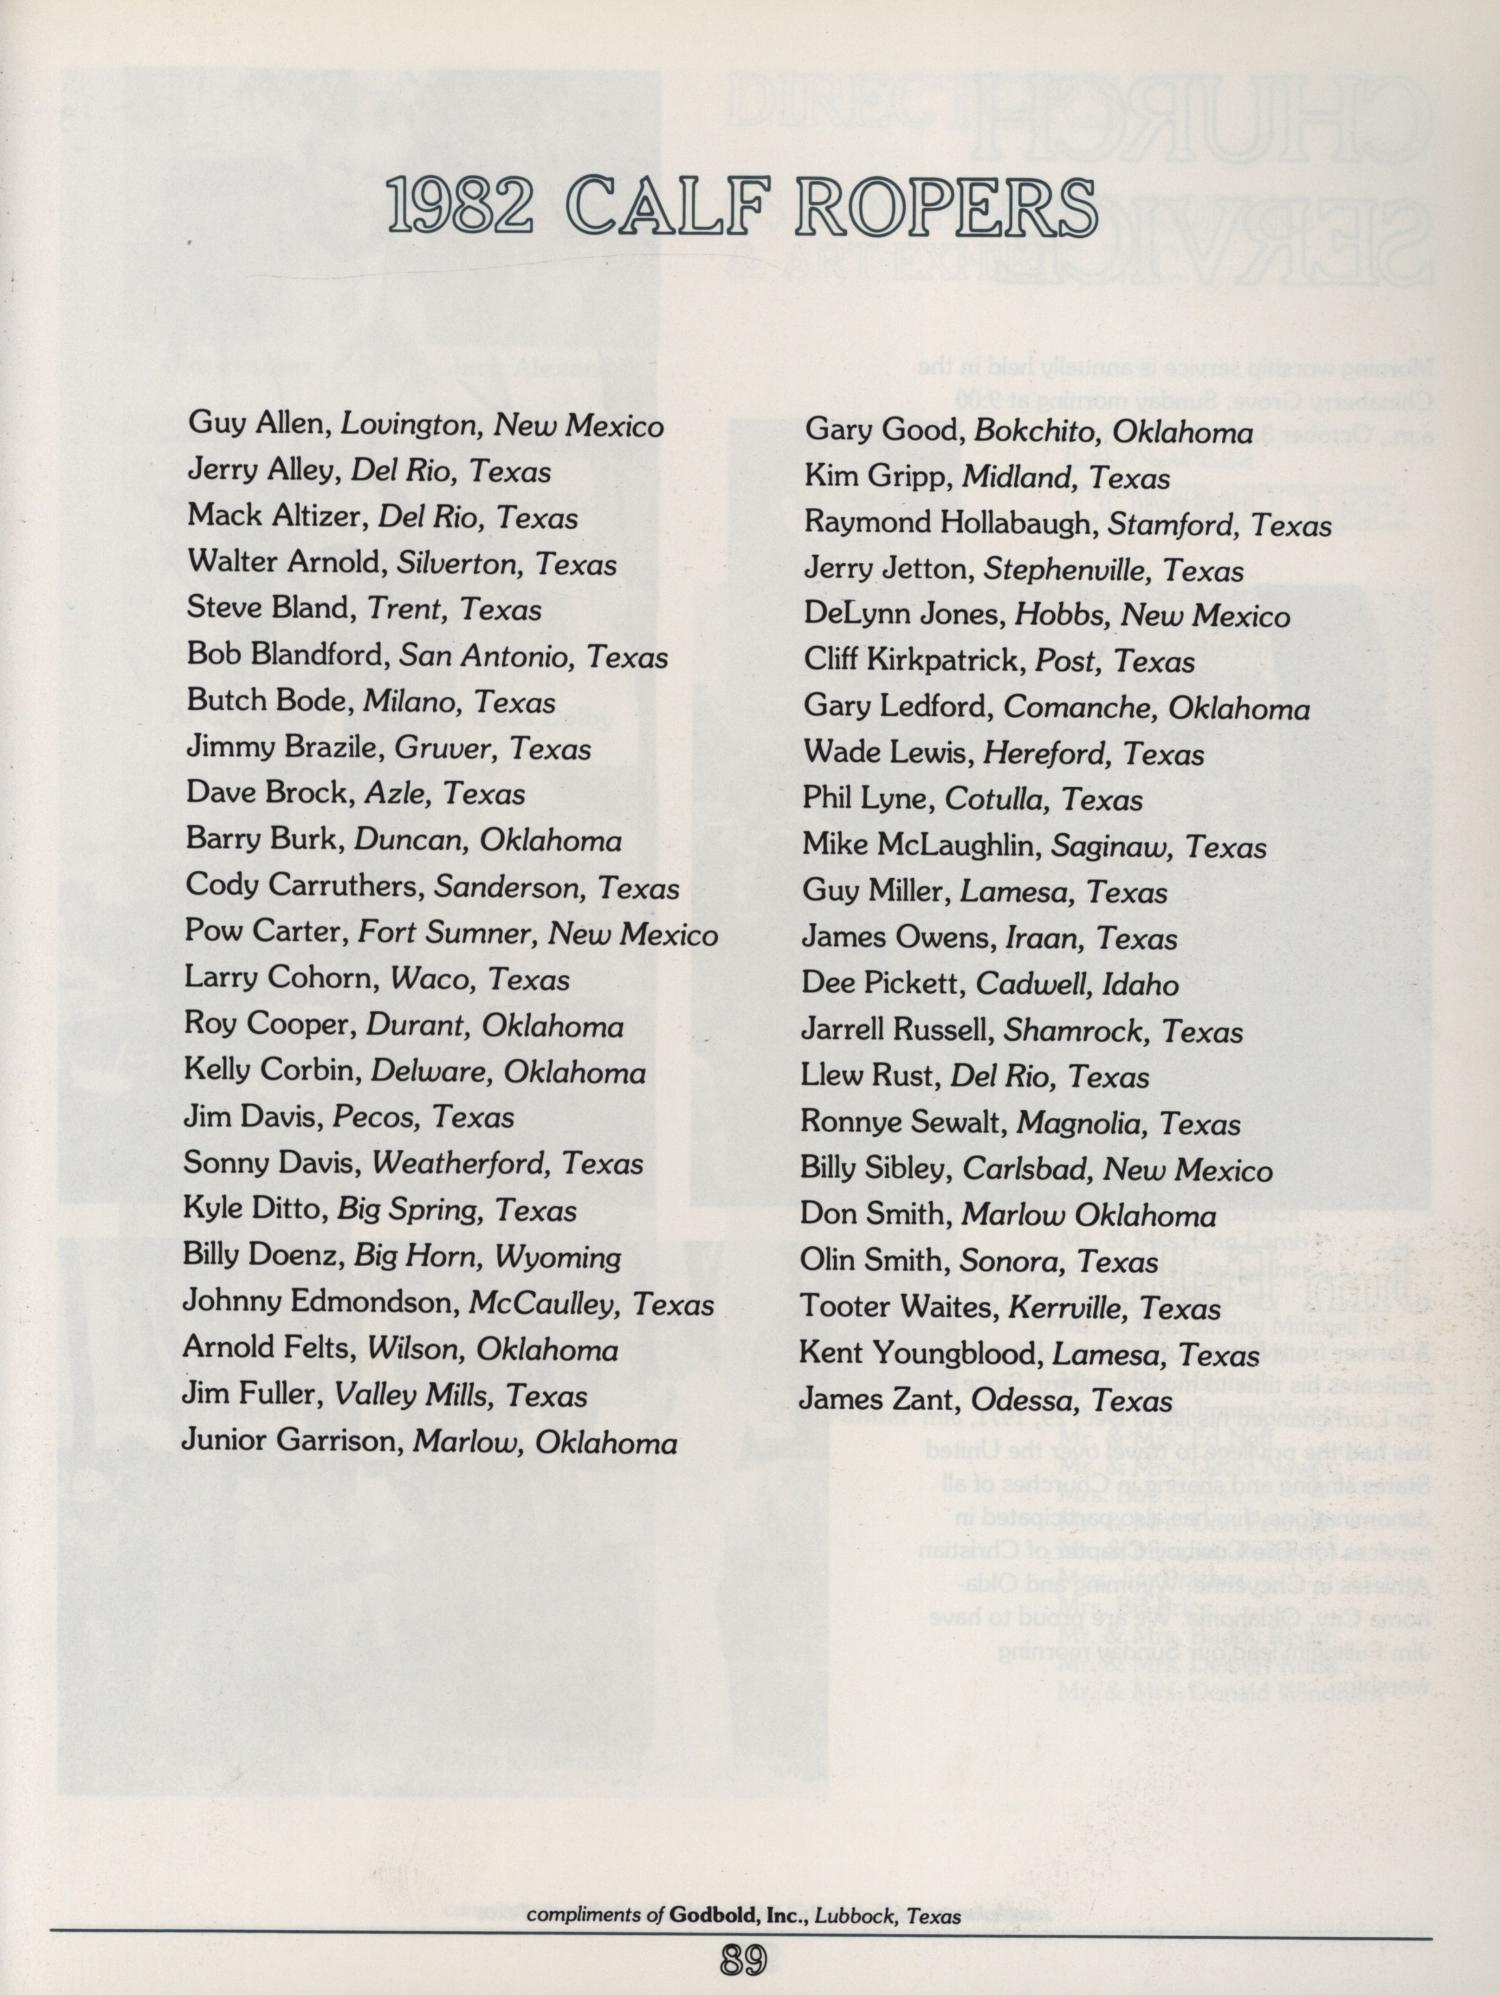 os ranch steer roping art exhibit page  os ranch steer roping art exhibit 1 3 1982 page 89